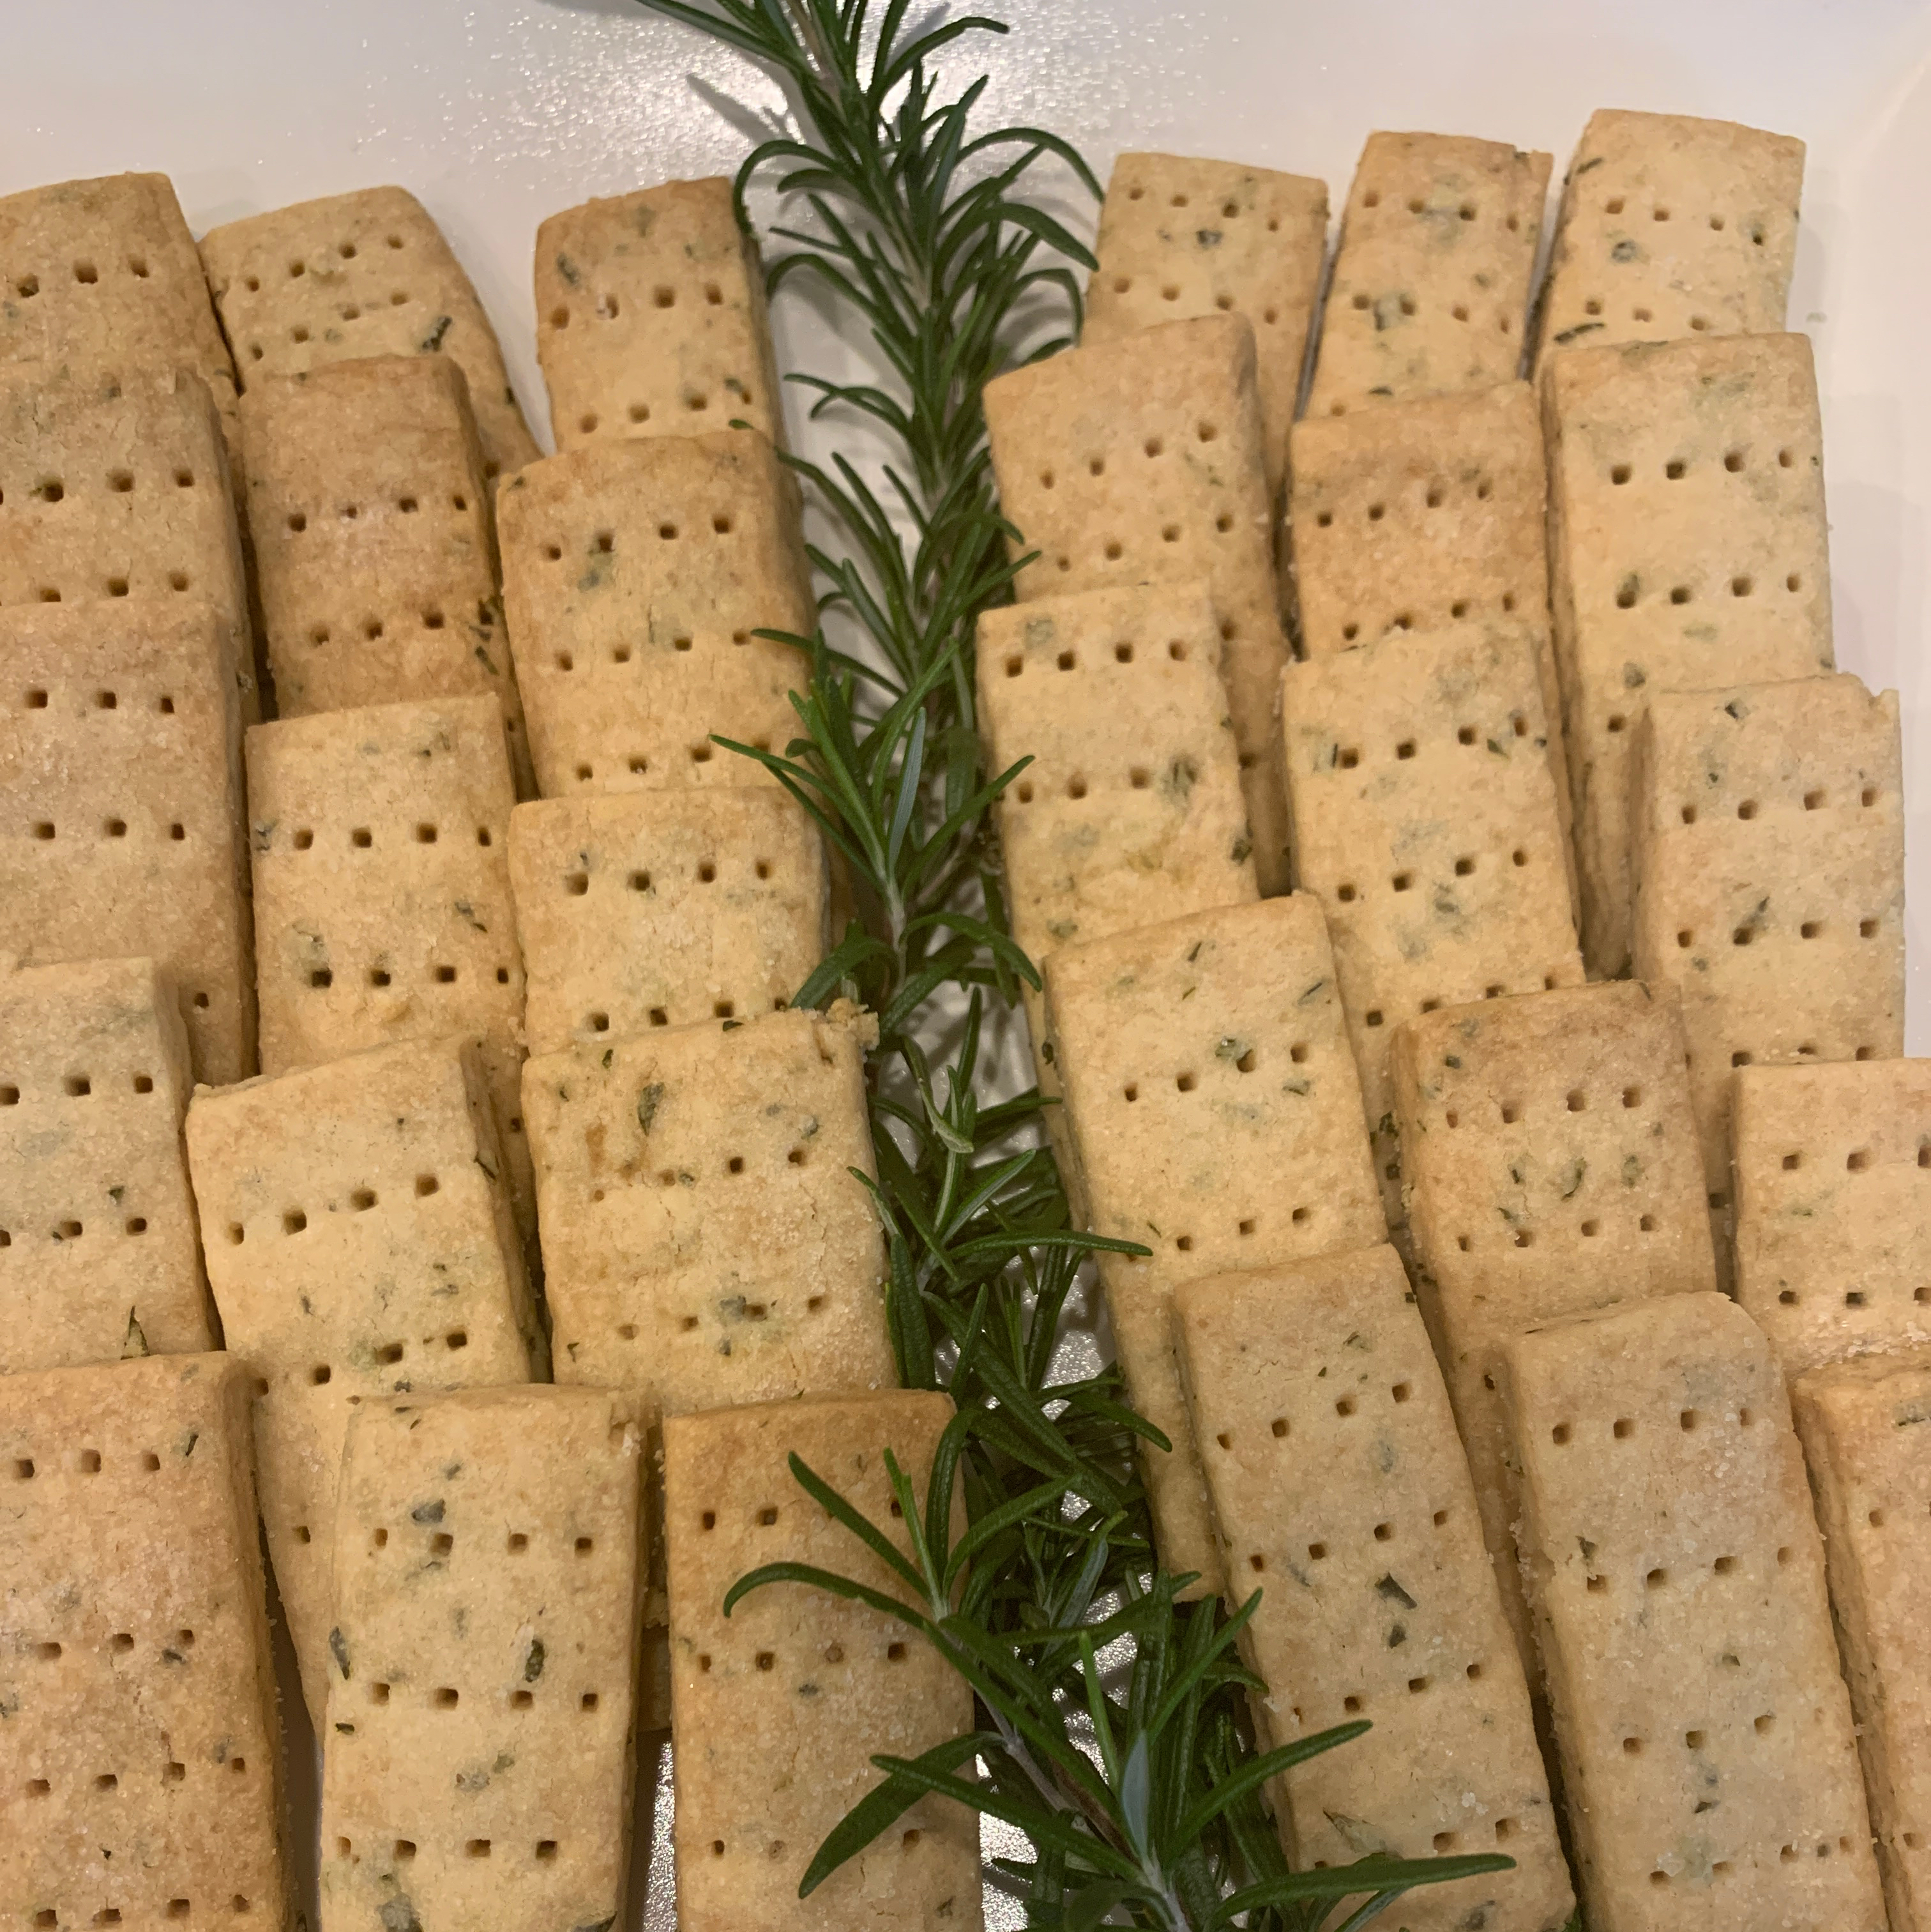 Chef John's Rosemary Shortbread Cookies